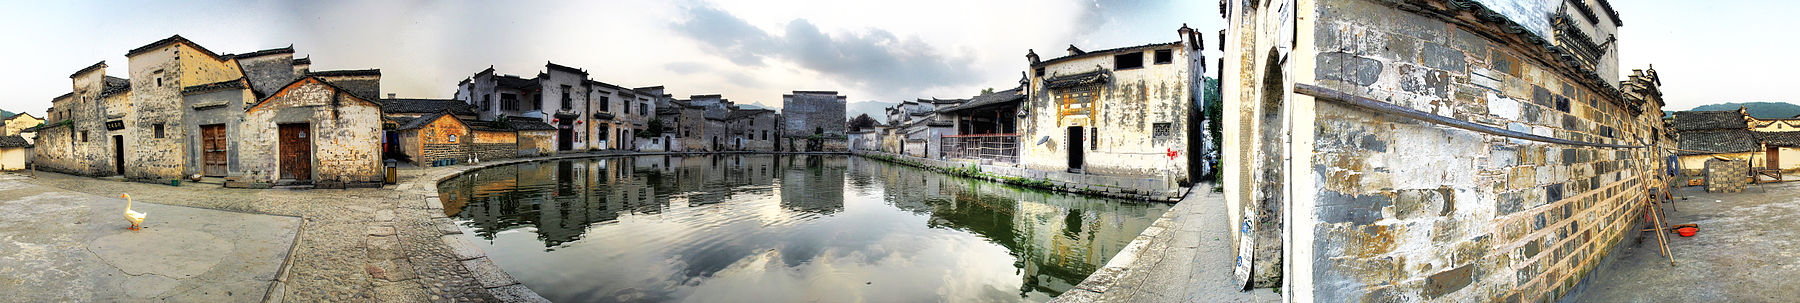 Panorama of Hongcun